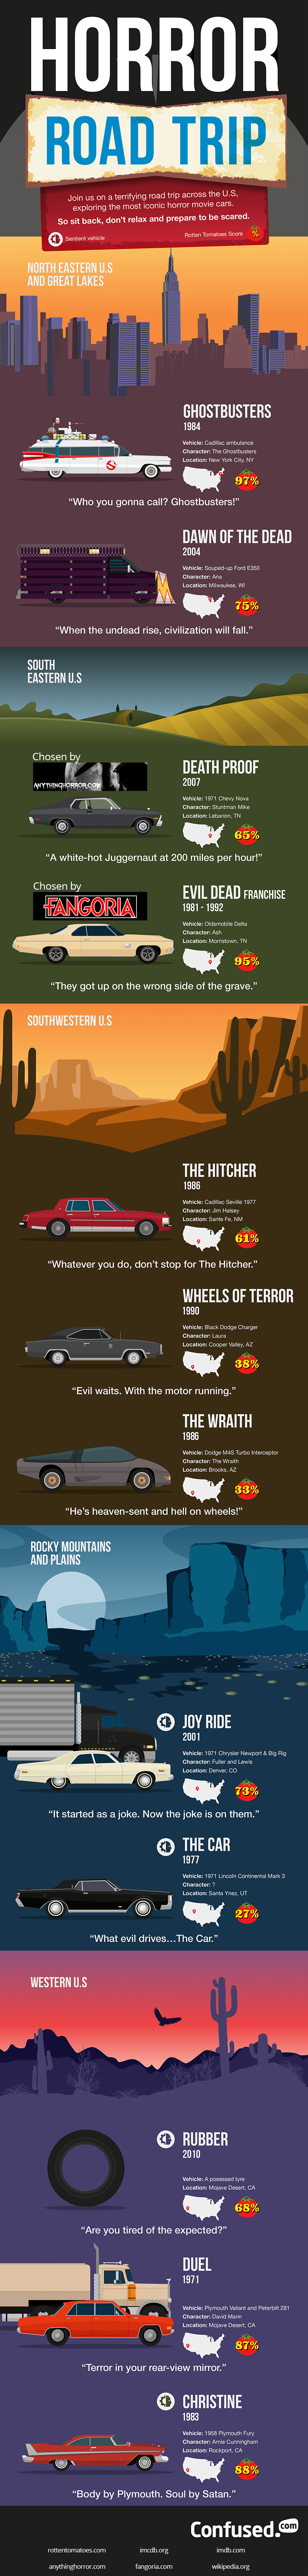 Horror movie road trip infographic